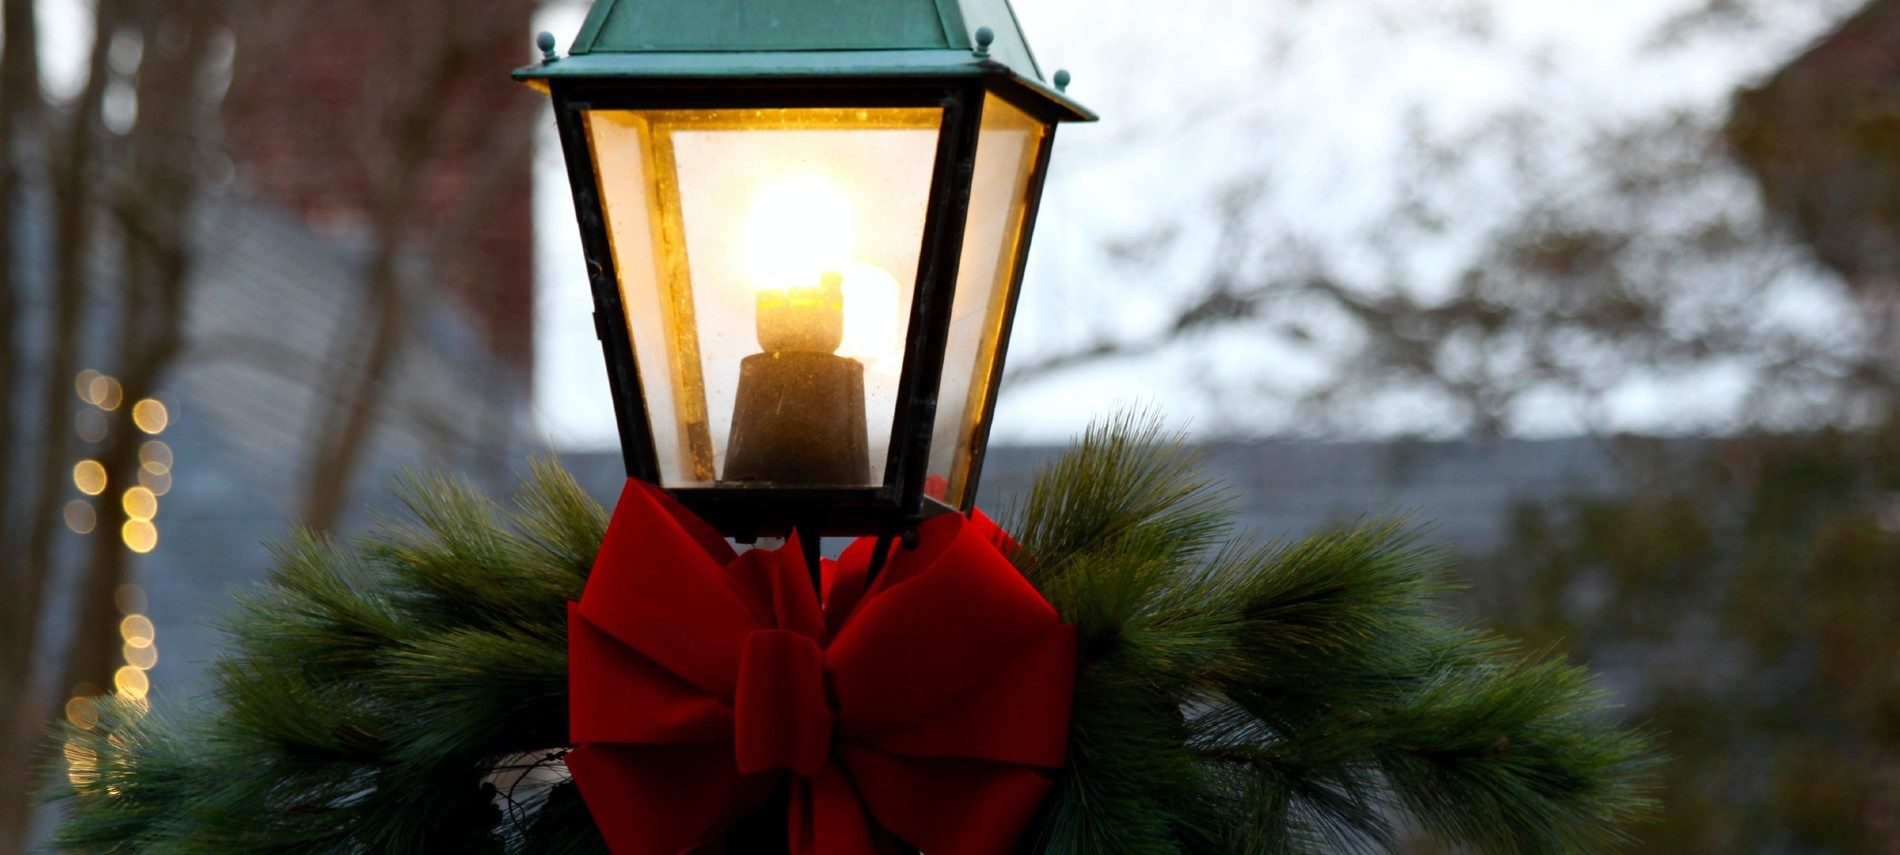 One tall black lantern lit up with greenery and a red bow at the base